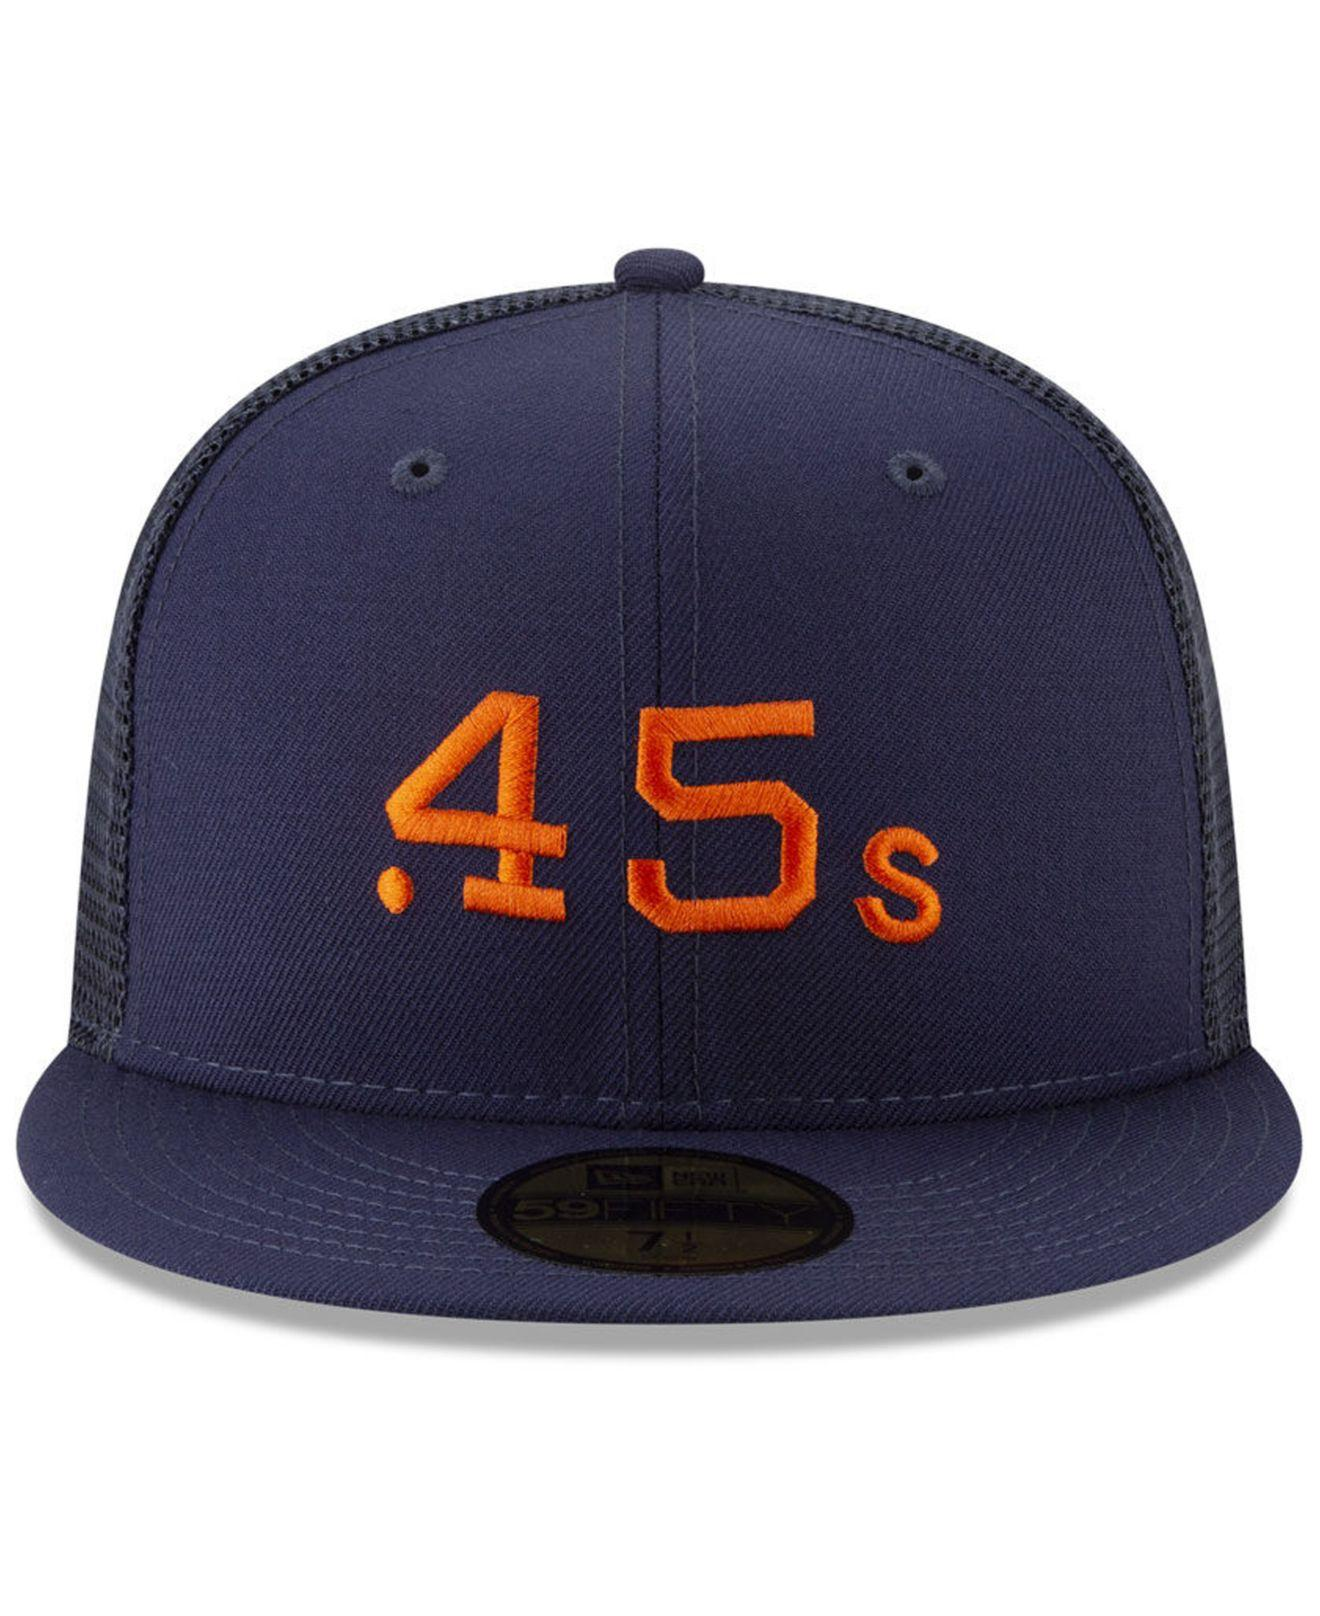 on sale 7de4c bd3b7 Lyst - KTZ Houston Colt 45s Coop All Day 59fifty-fitted Cap in Blue for Men